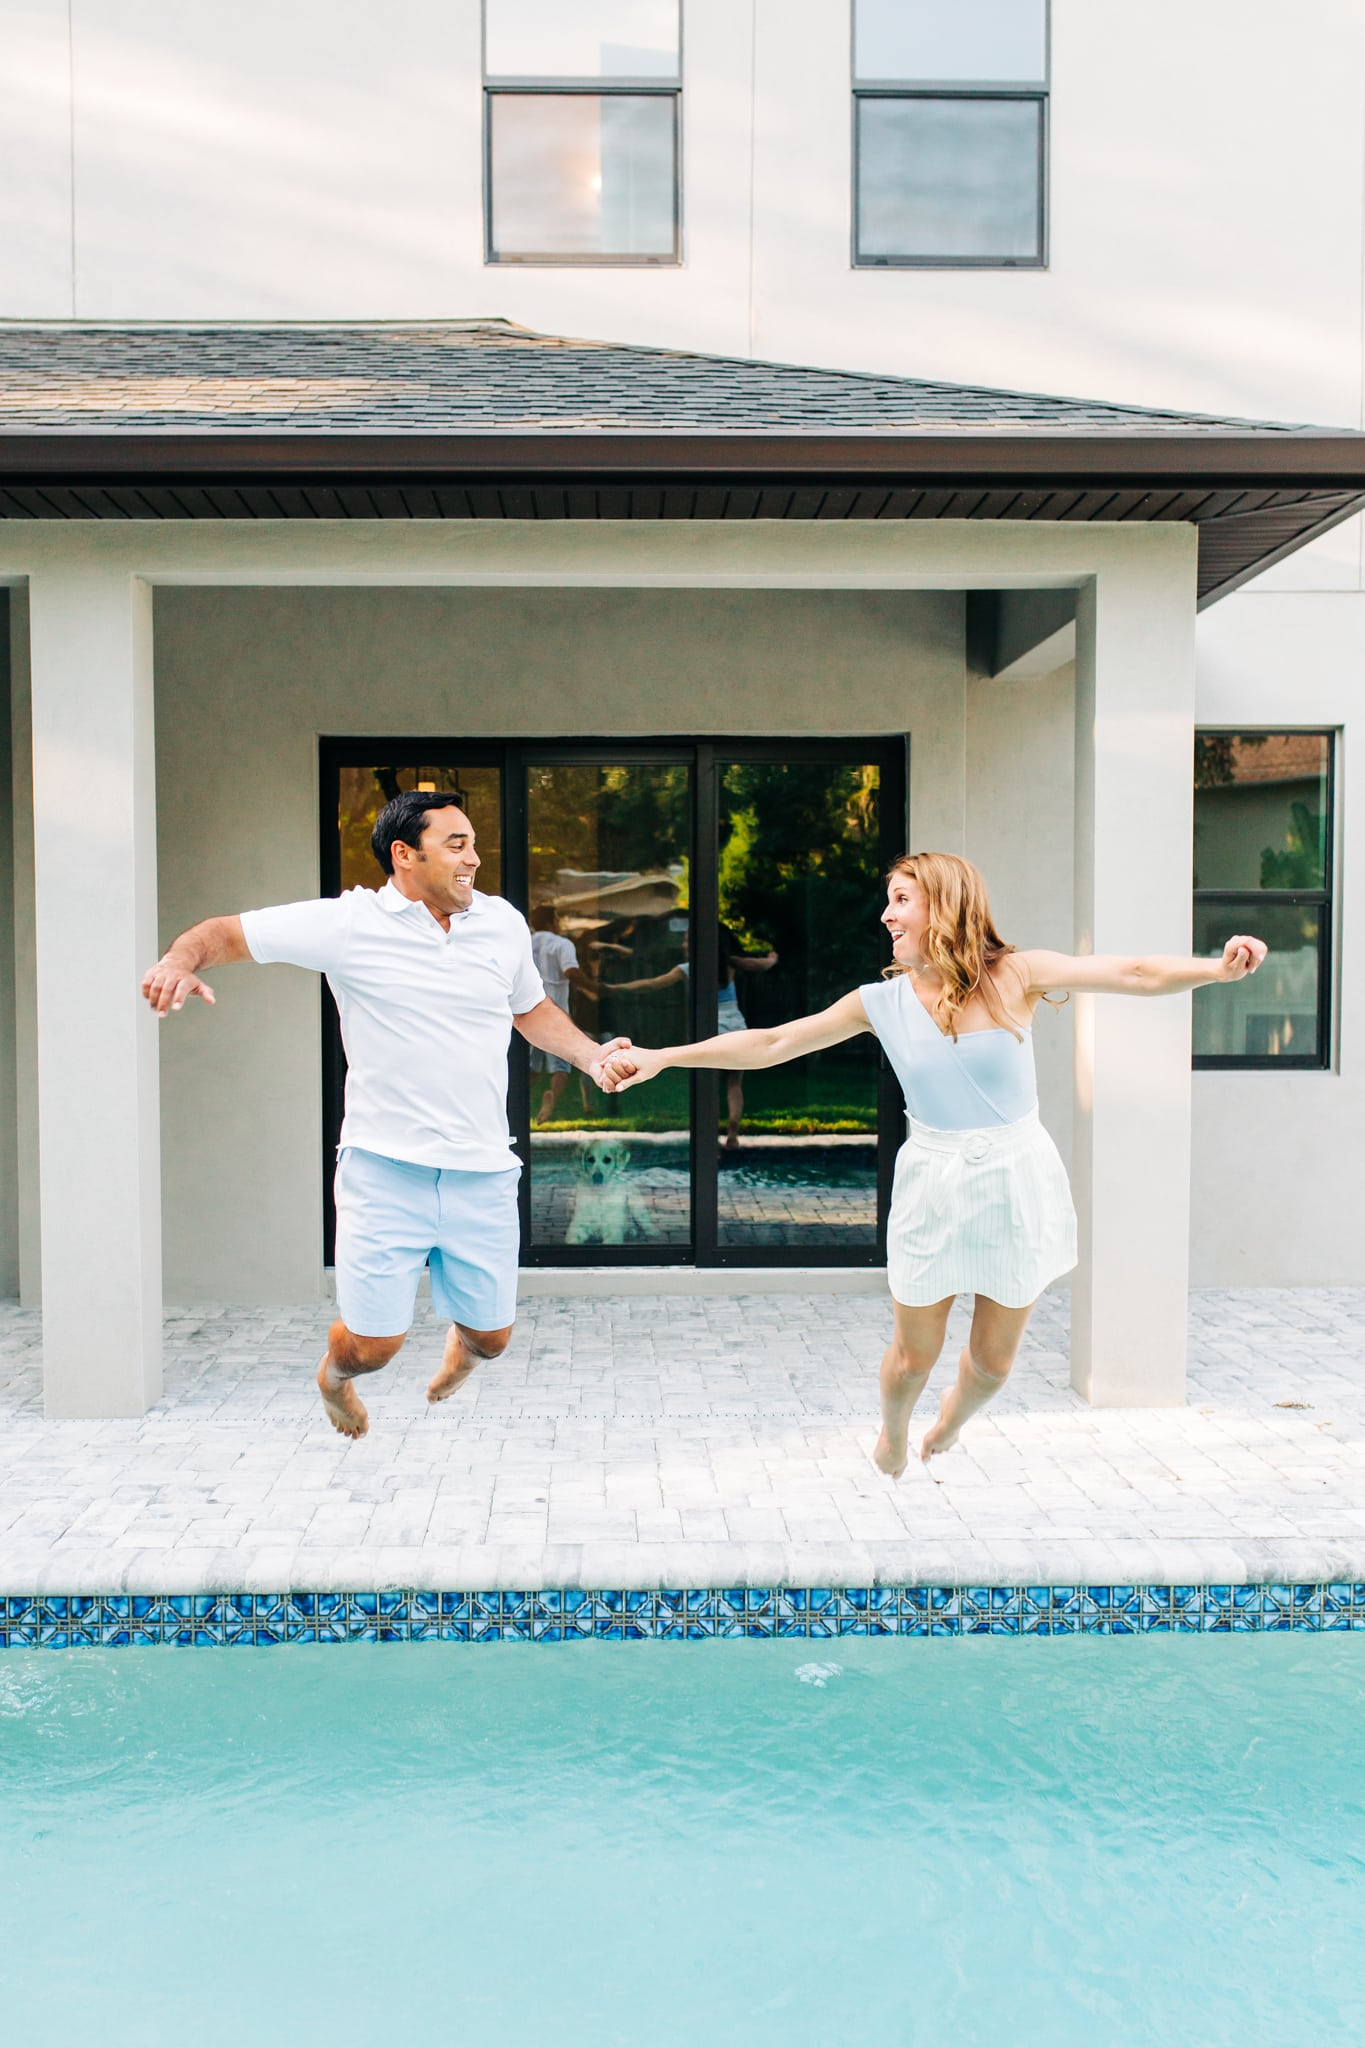 couple jumping into pool after buying a new house